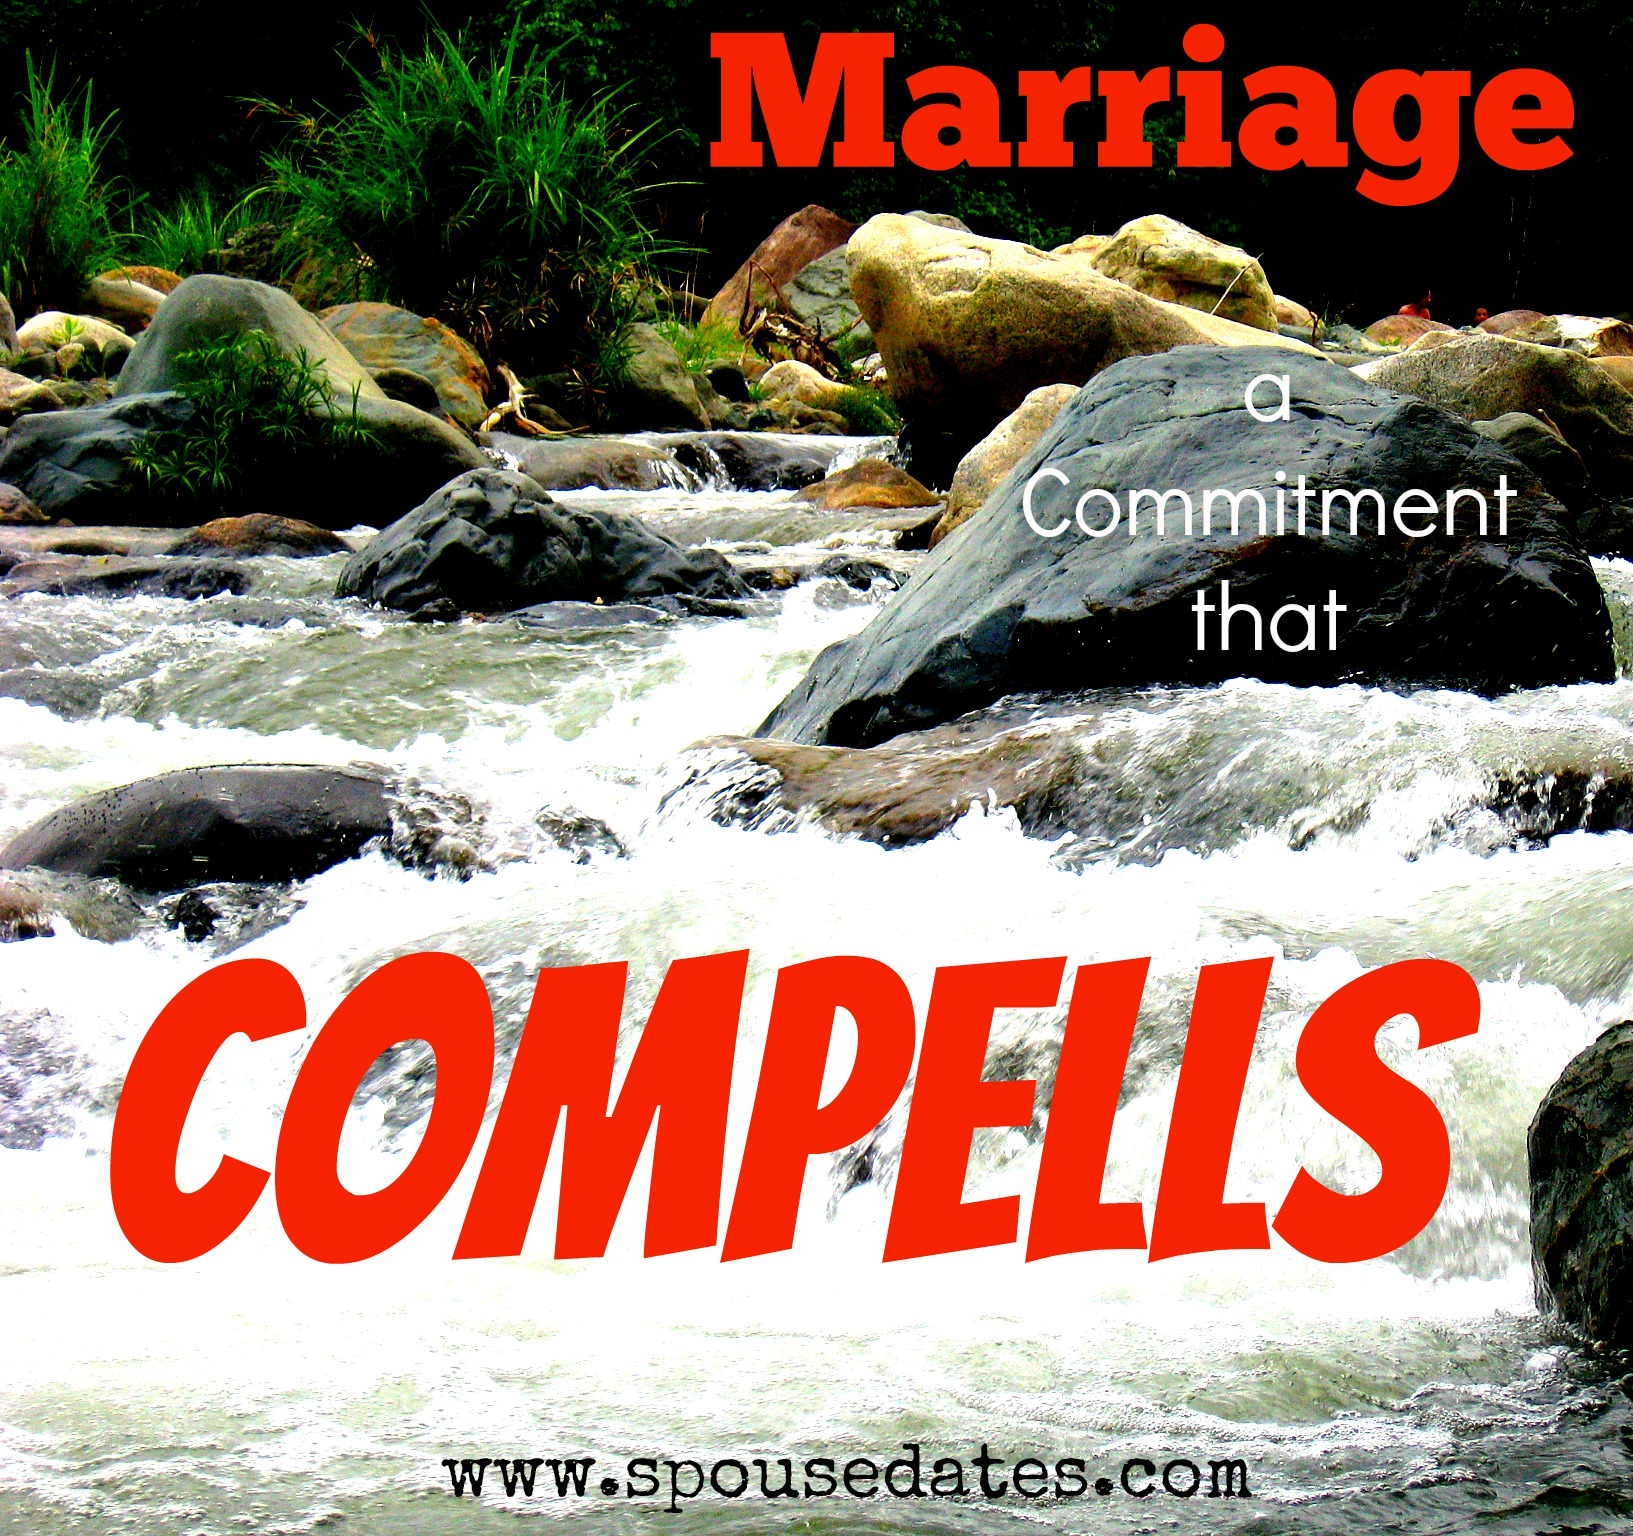 Marriage: A Commitment that Compells